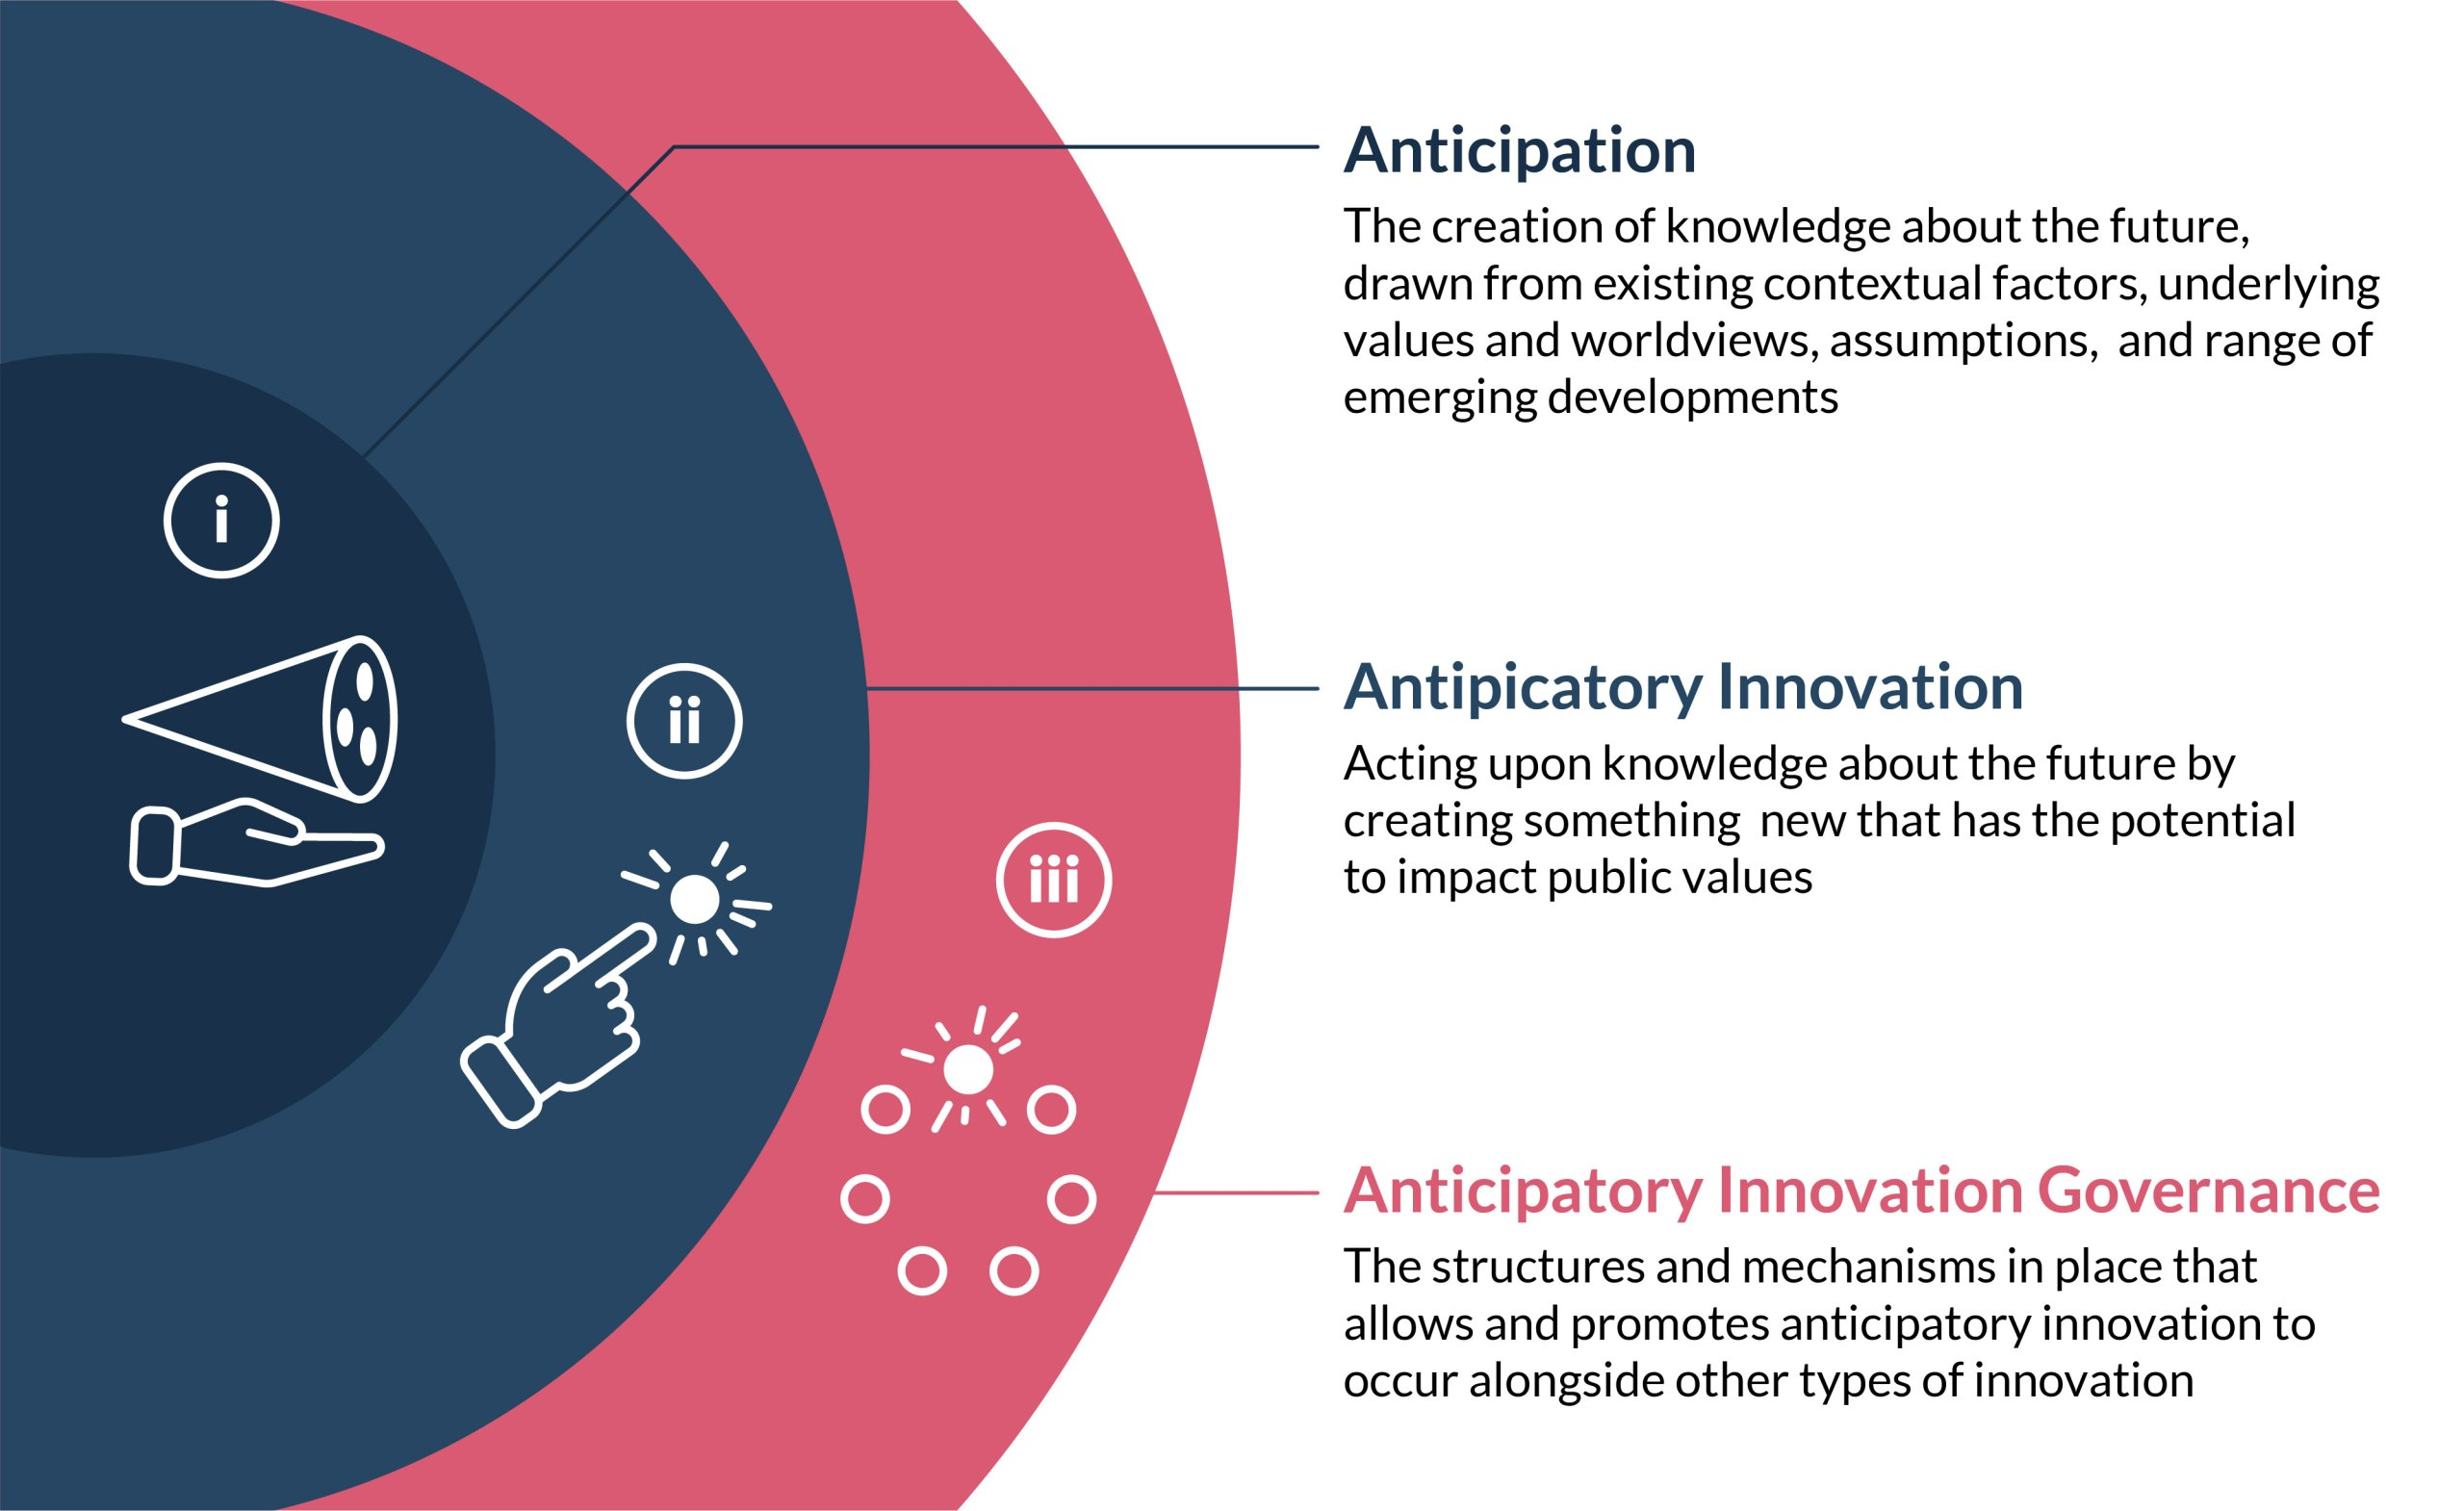 What is the difference between anticipatory, innovation, and governance?